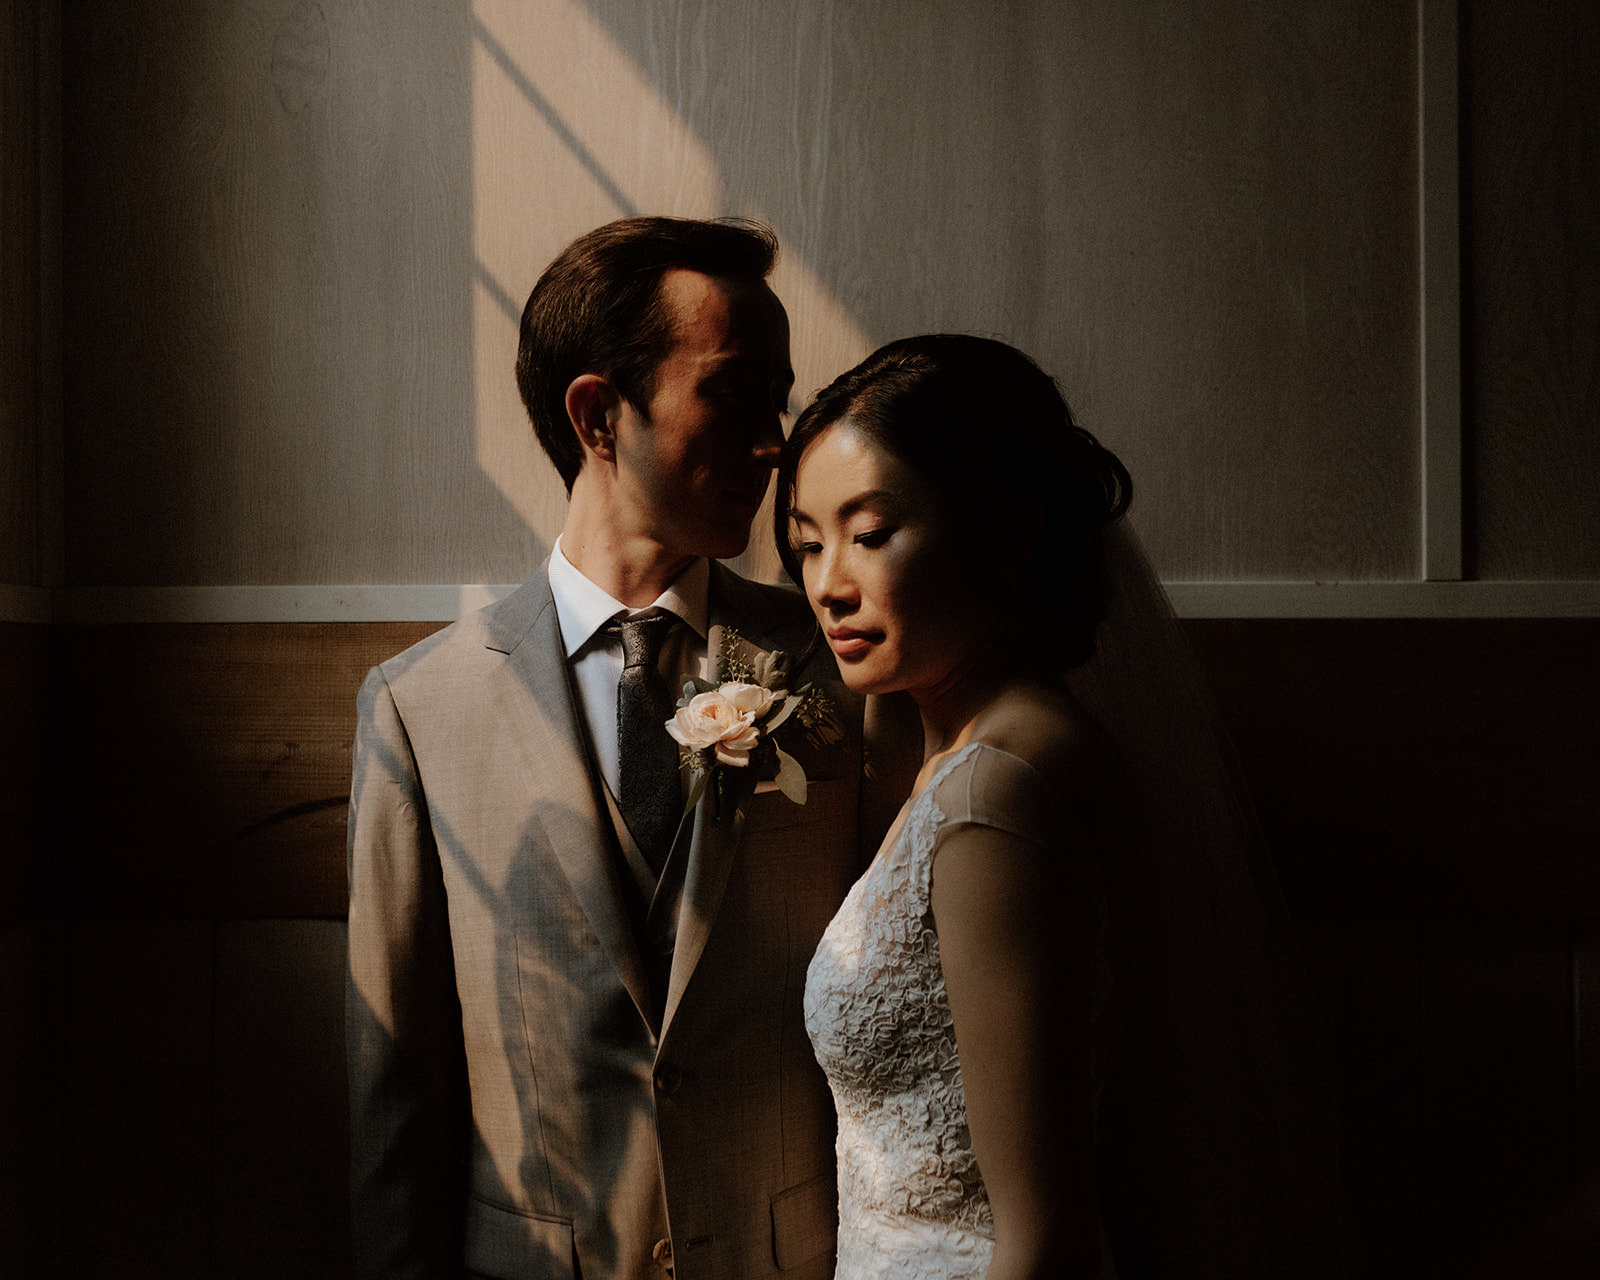 Posed Newlyweds in Shadow at Rustic Anvil Island Wedding by Vancouver Bon Vivant Group